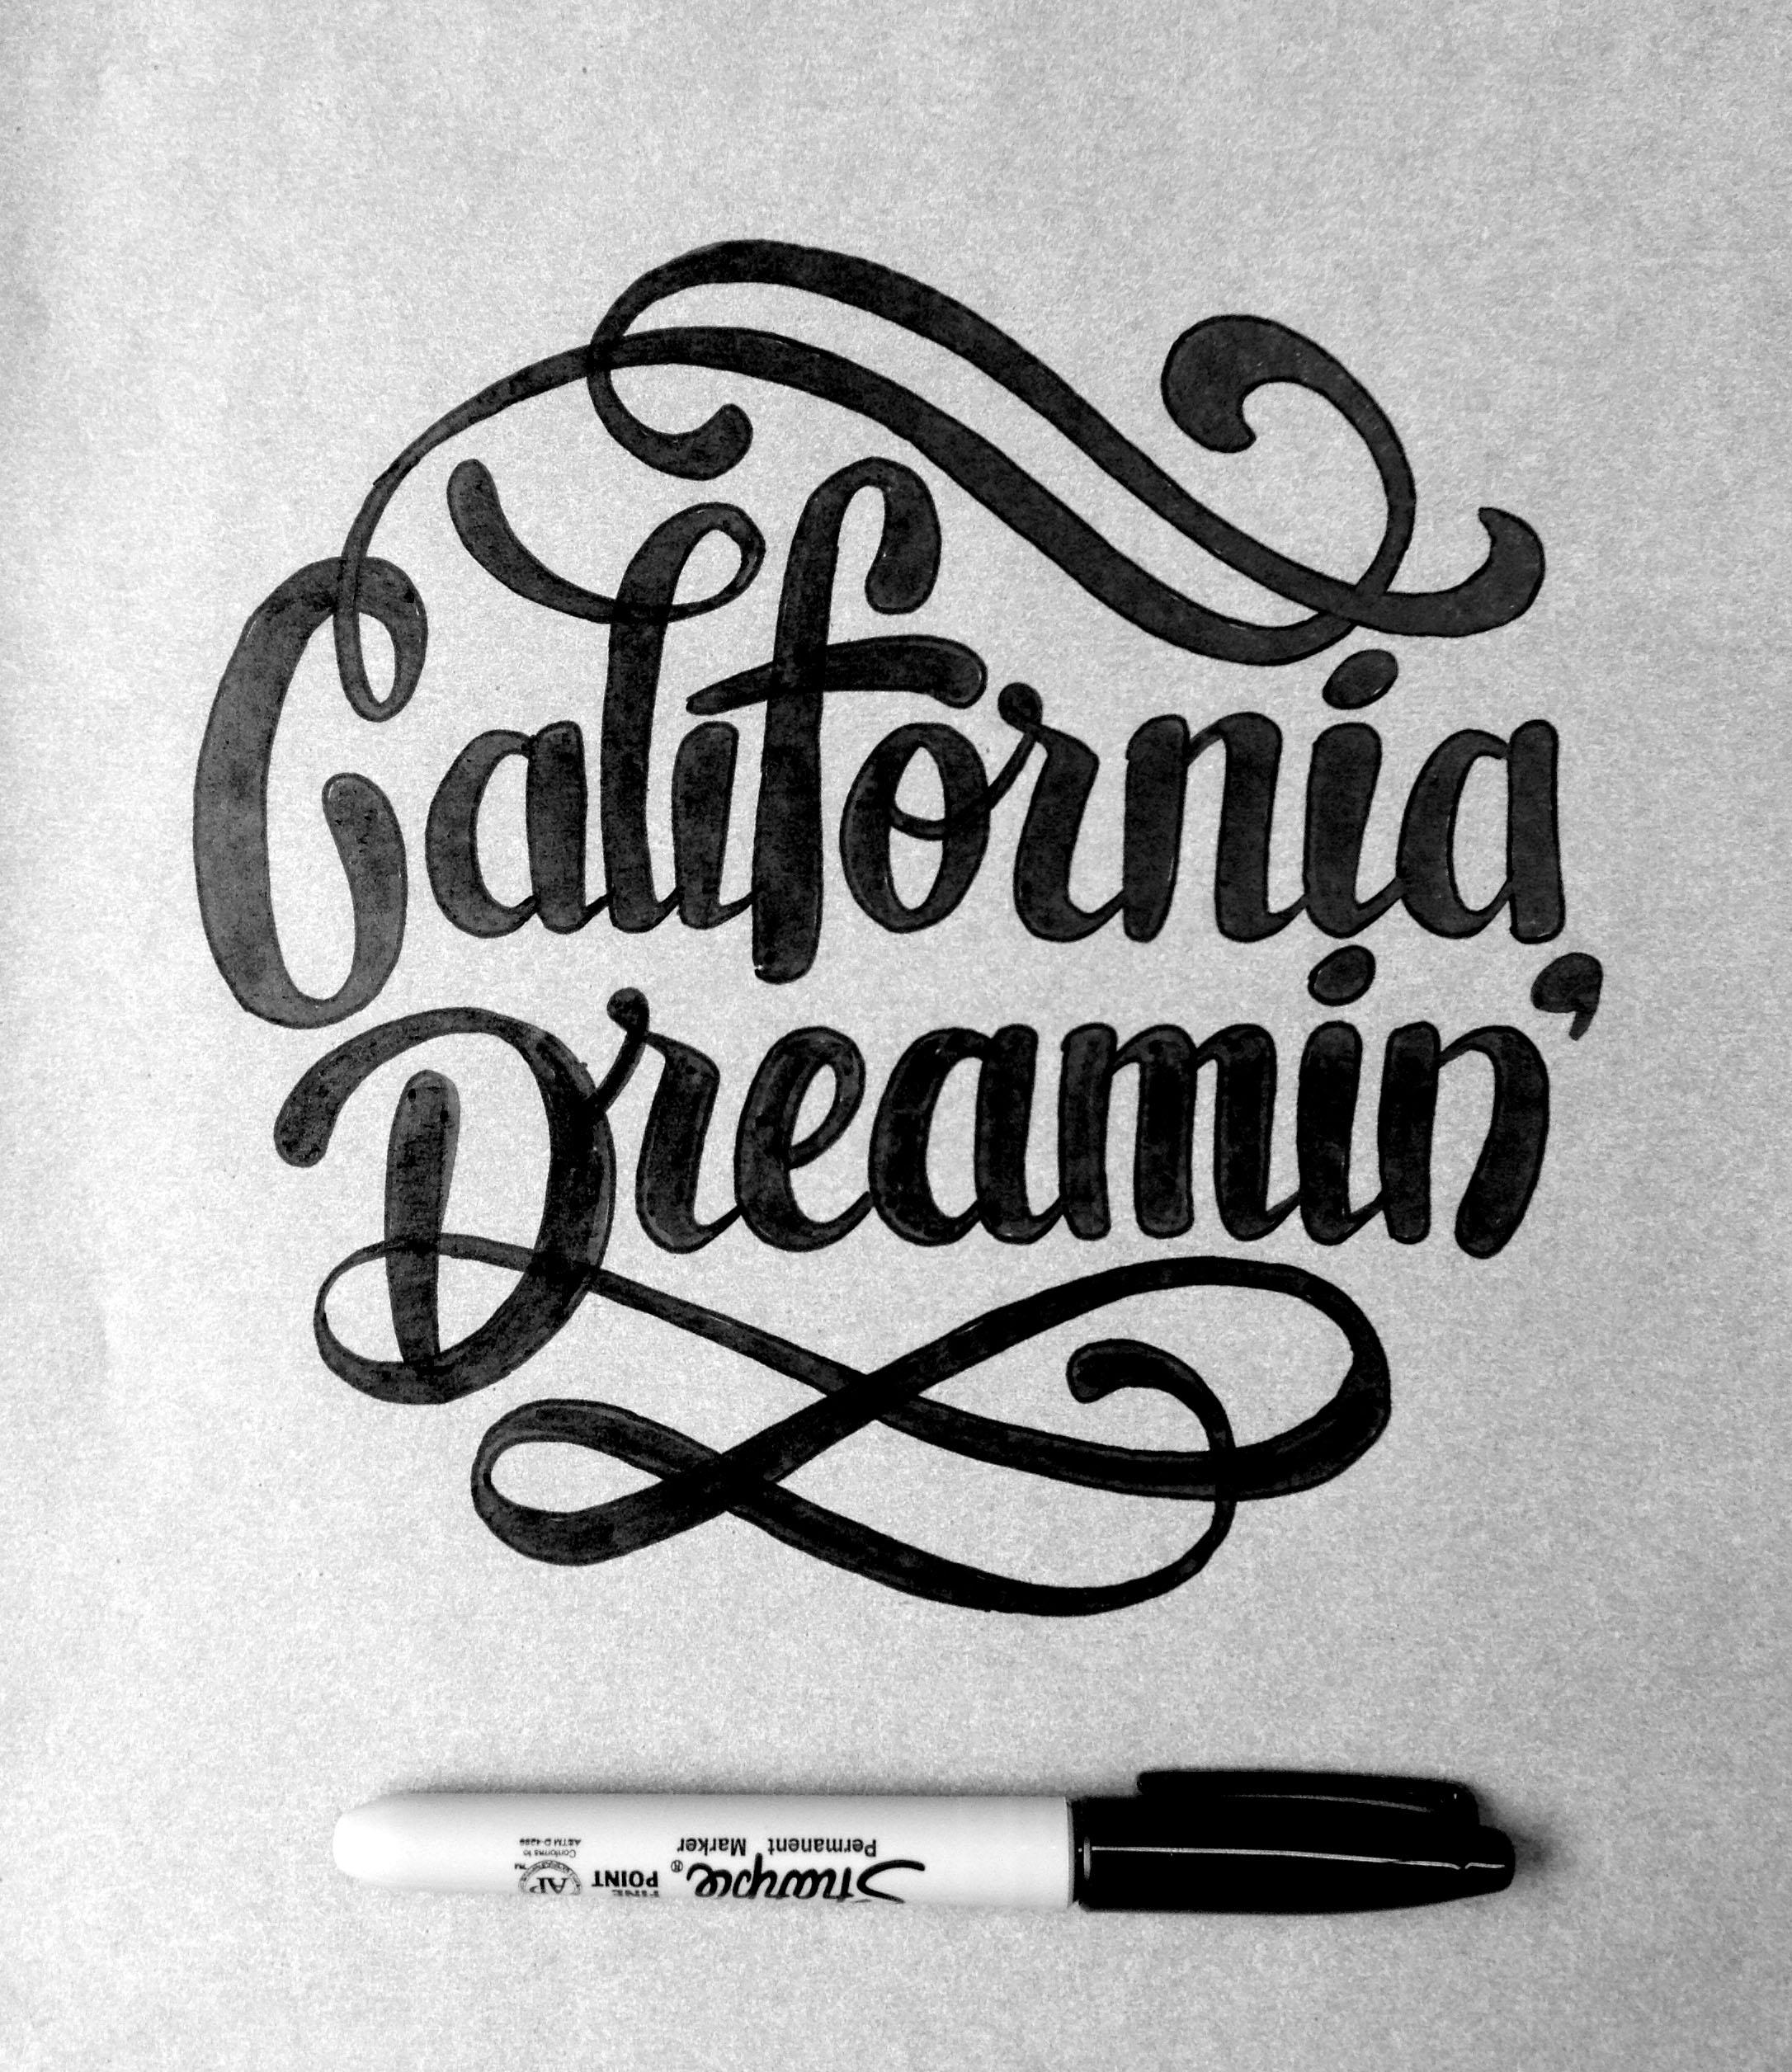 California Dreamin - image 5 - student project